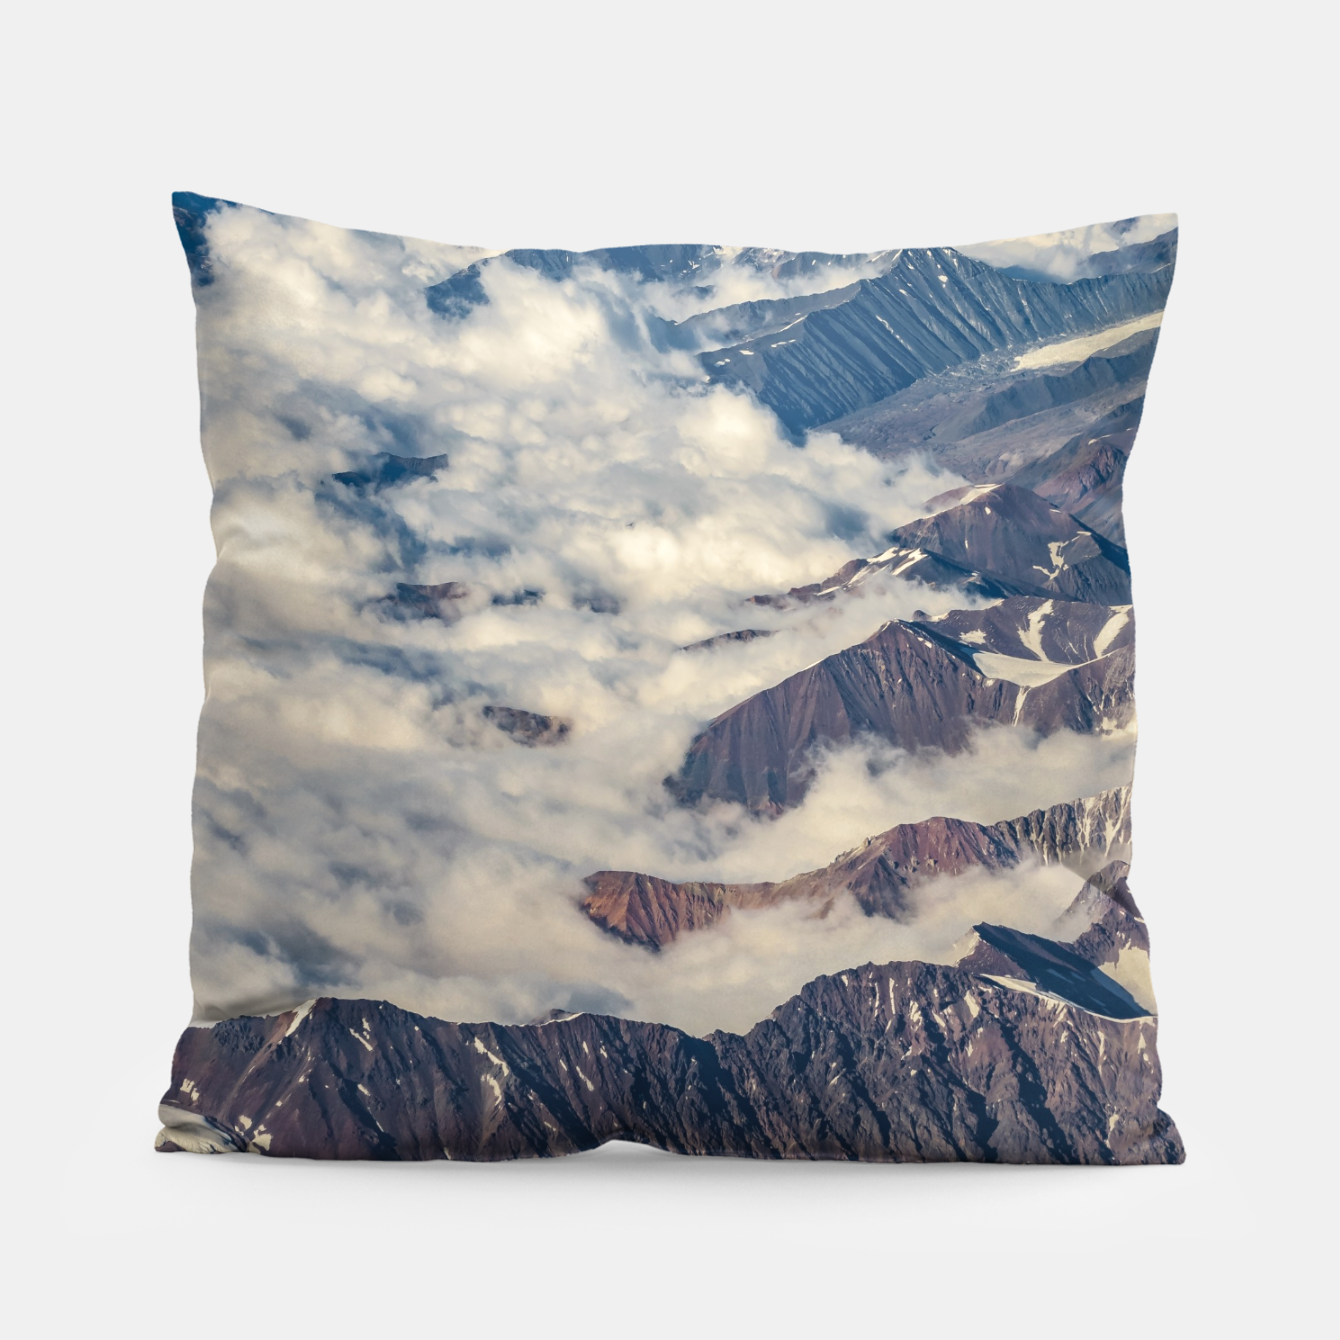 Zdjęcie Andes Mountains Aerial View, Chile Pillow - Live Heroes